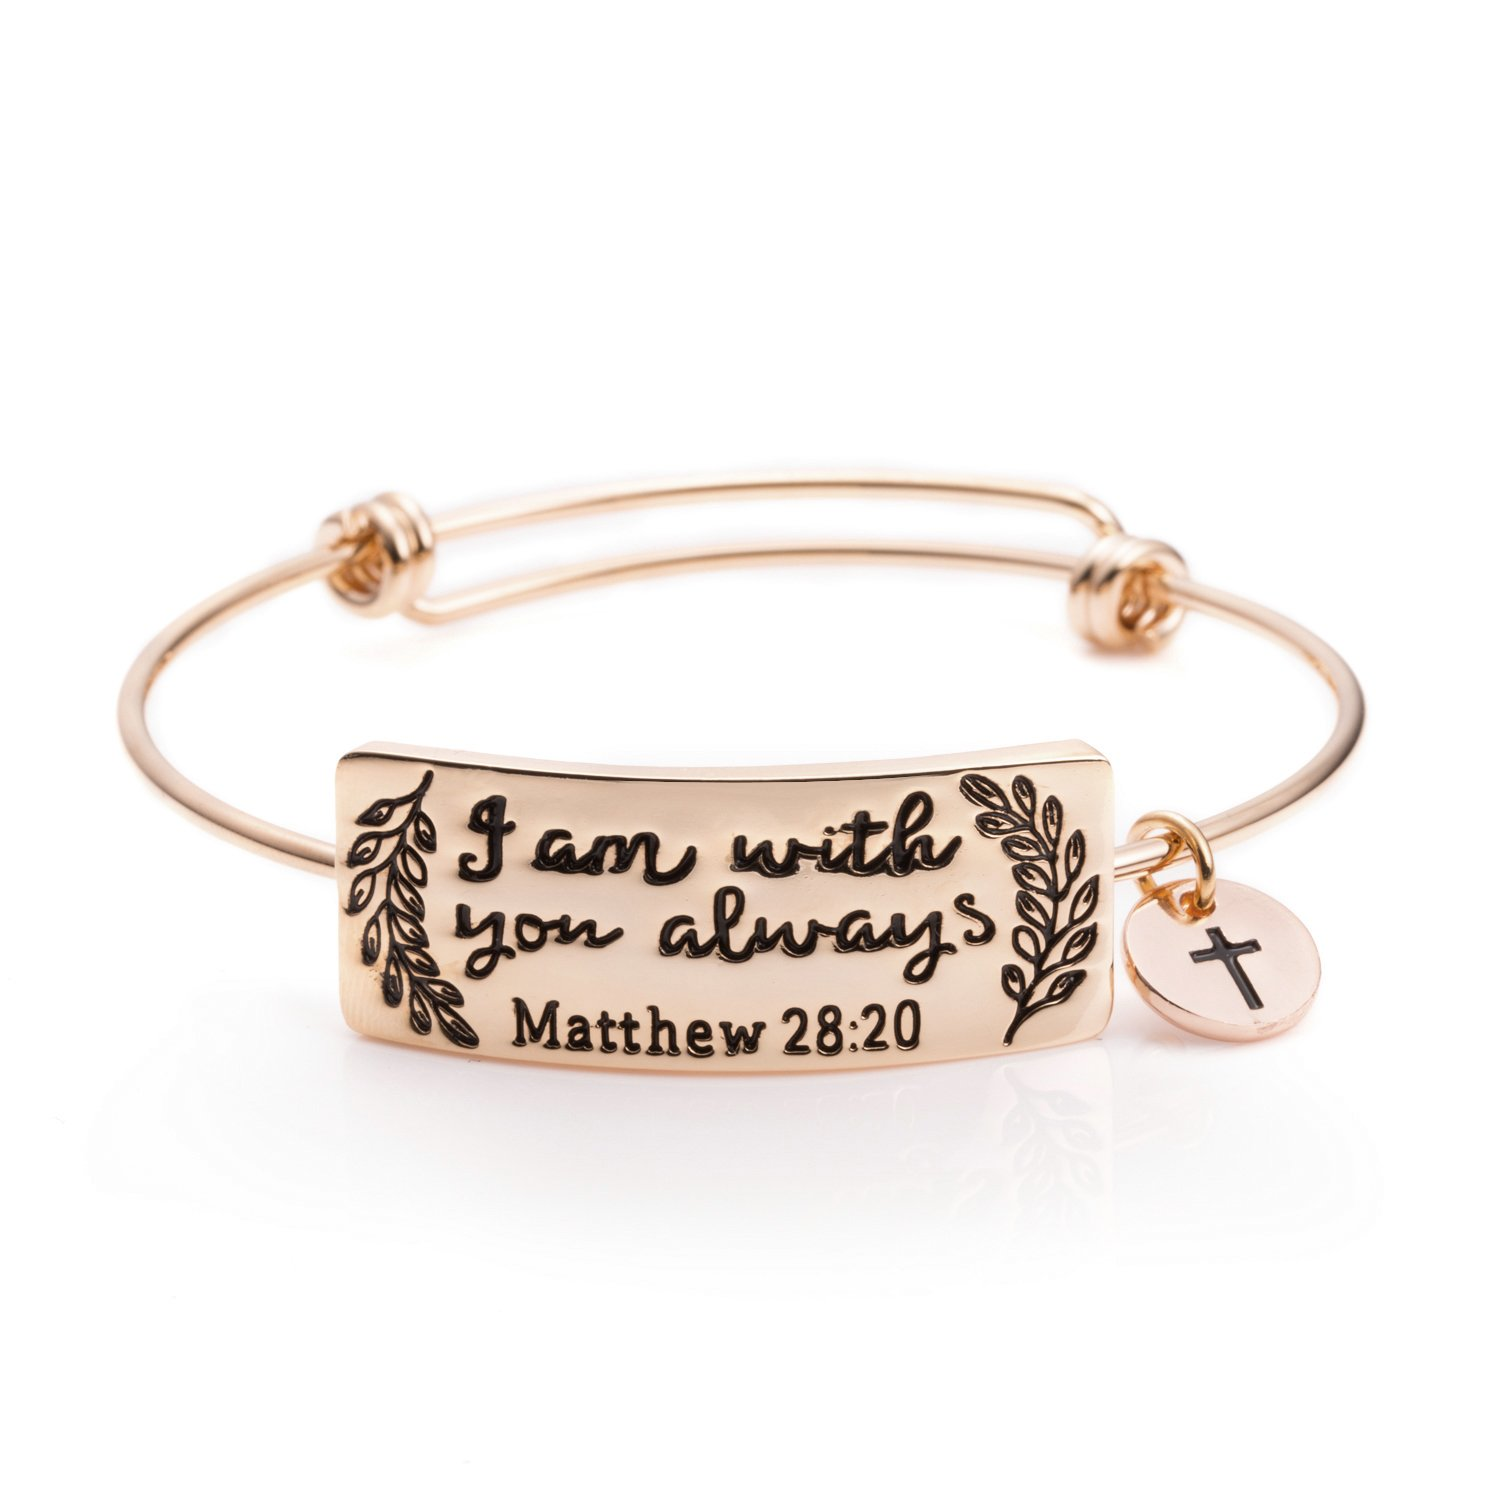 Bible Verse Bracelet Christian Gift Religious Jewelry for Women Inspirational Bangle Engraved I Am With You Always(Rose Gold)